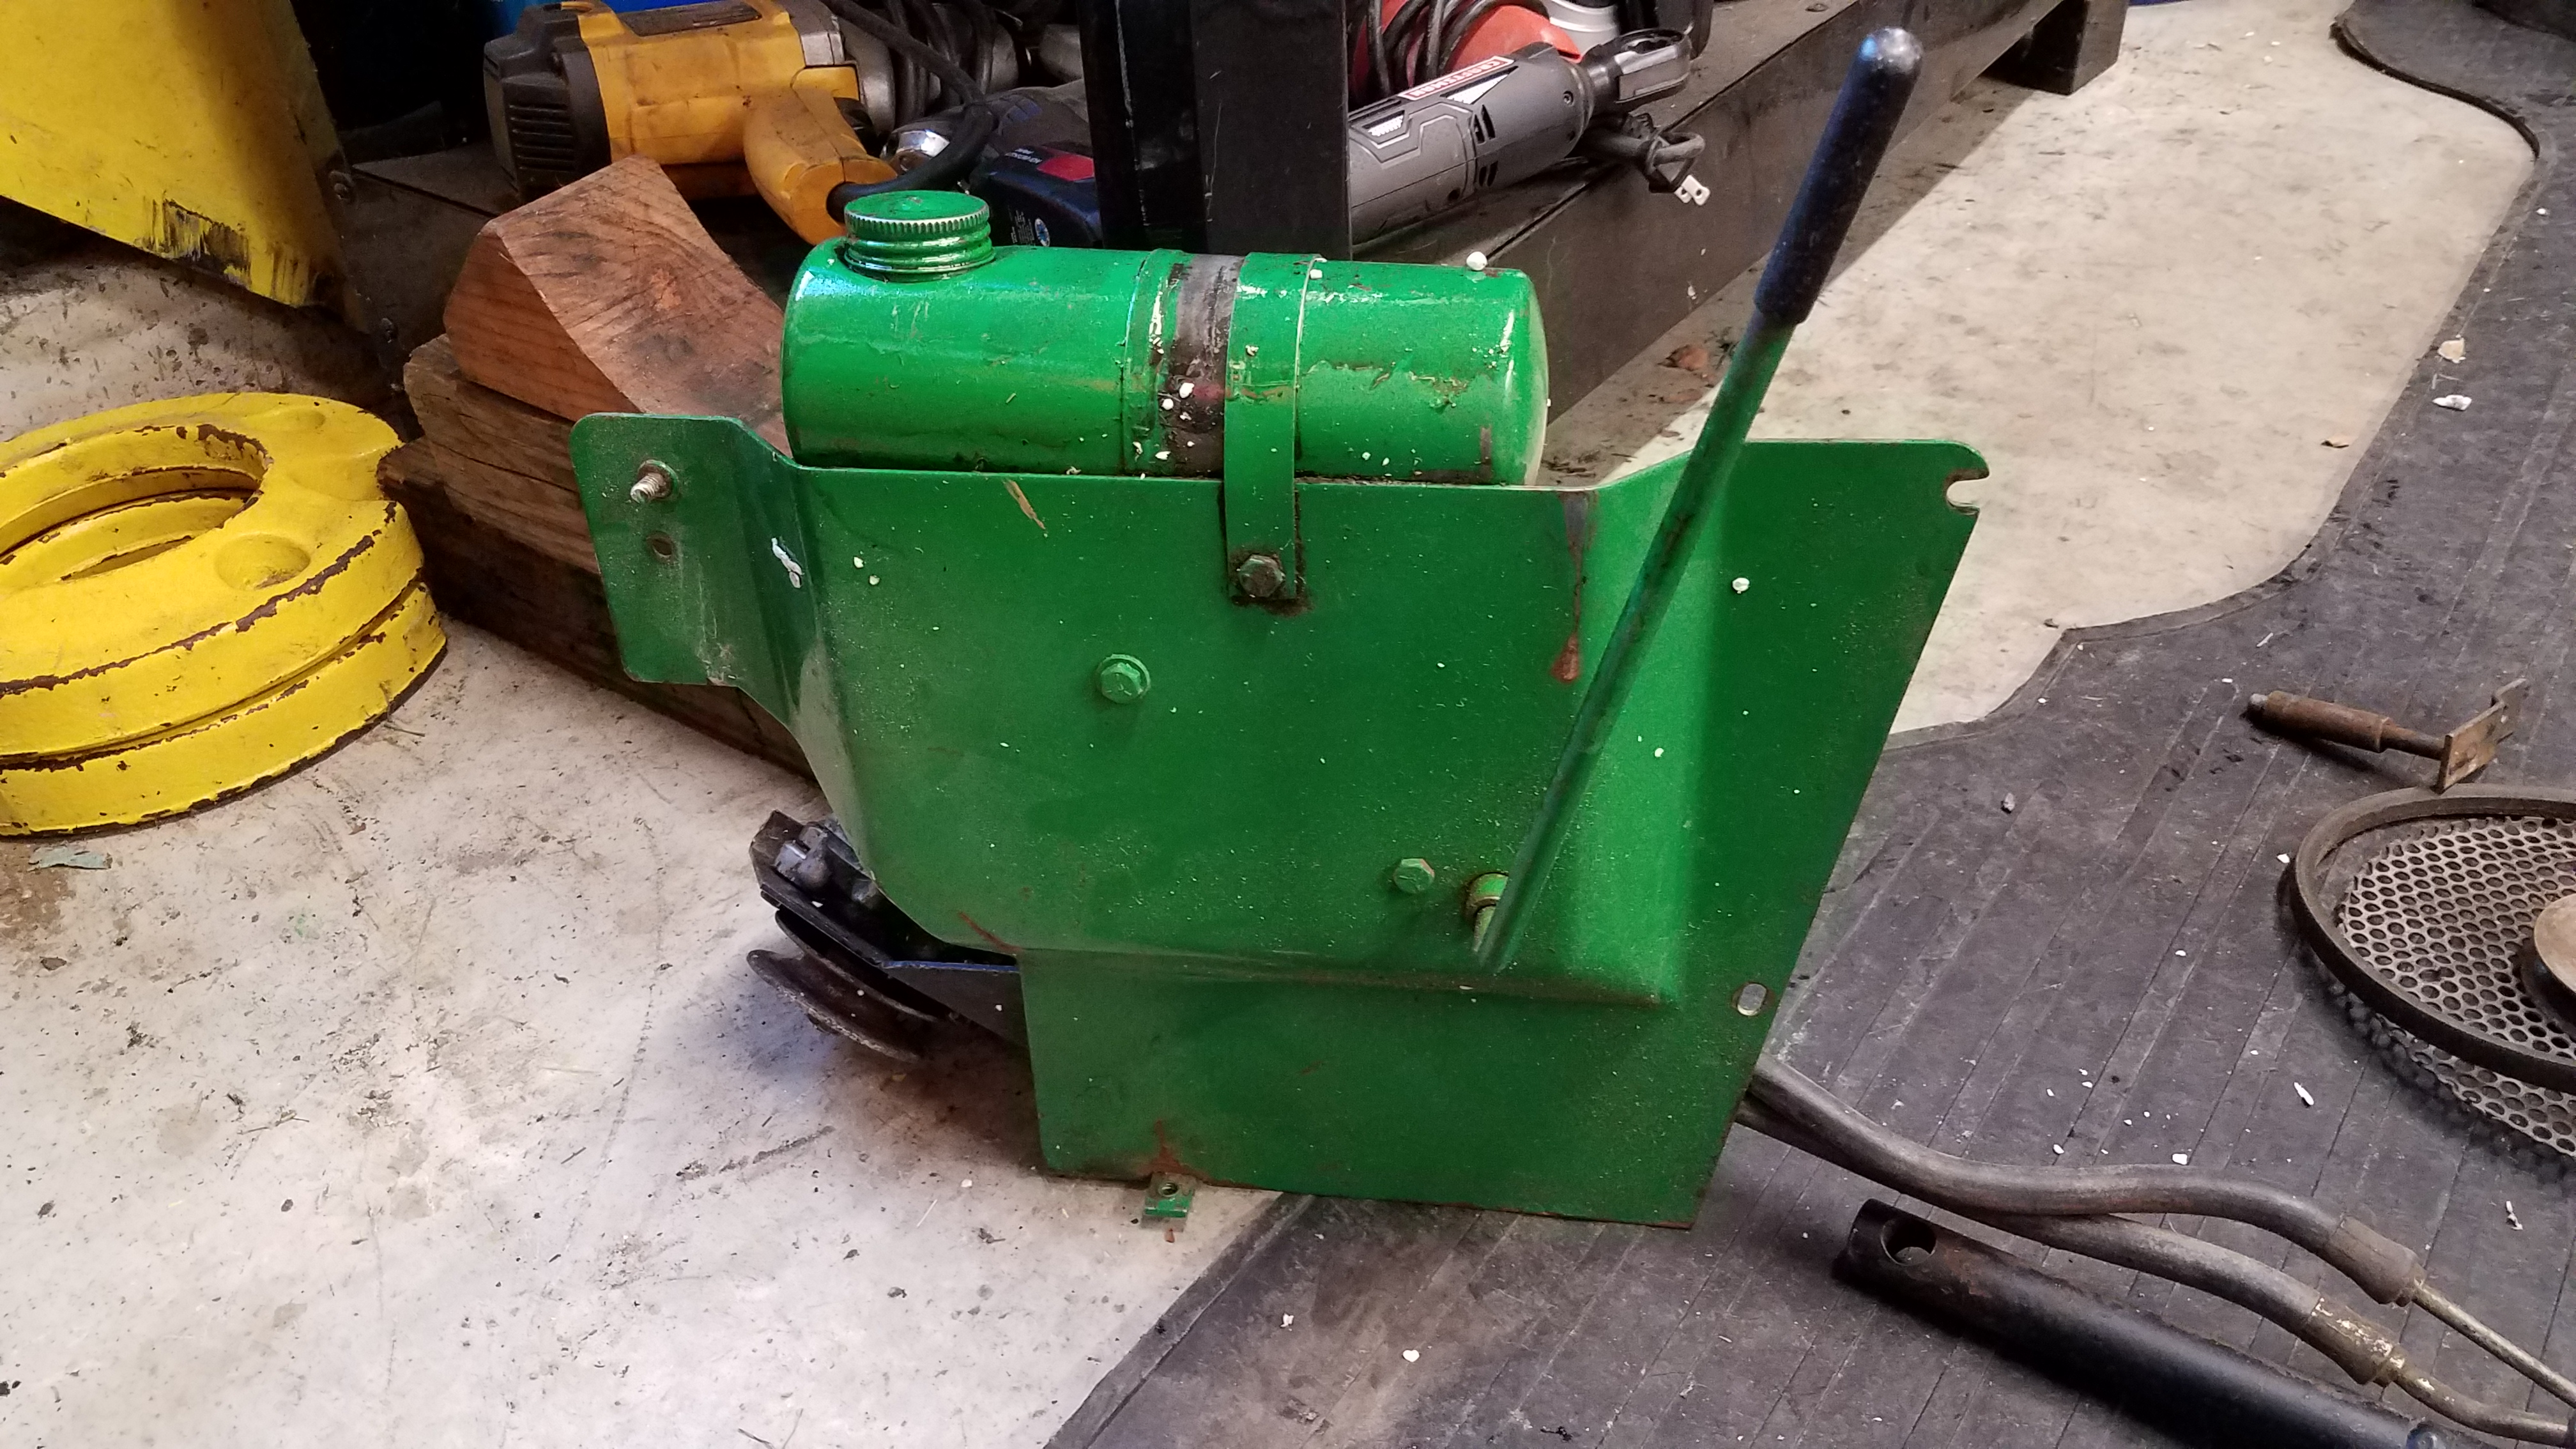 200 Series Hydraulic Lift Install - MyTractorForum.com - The ... on